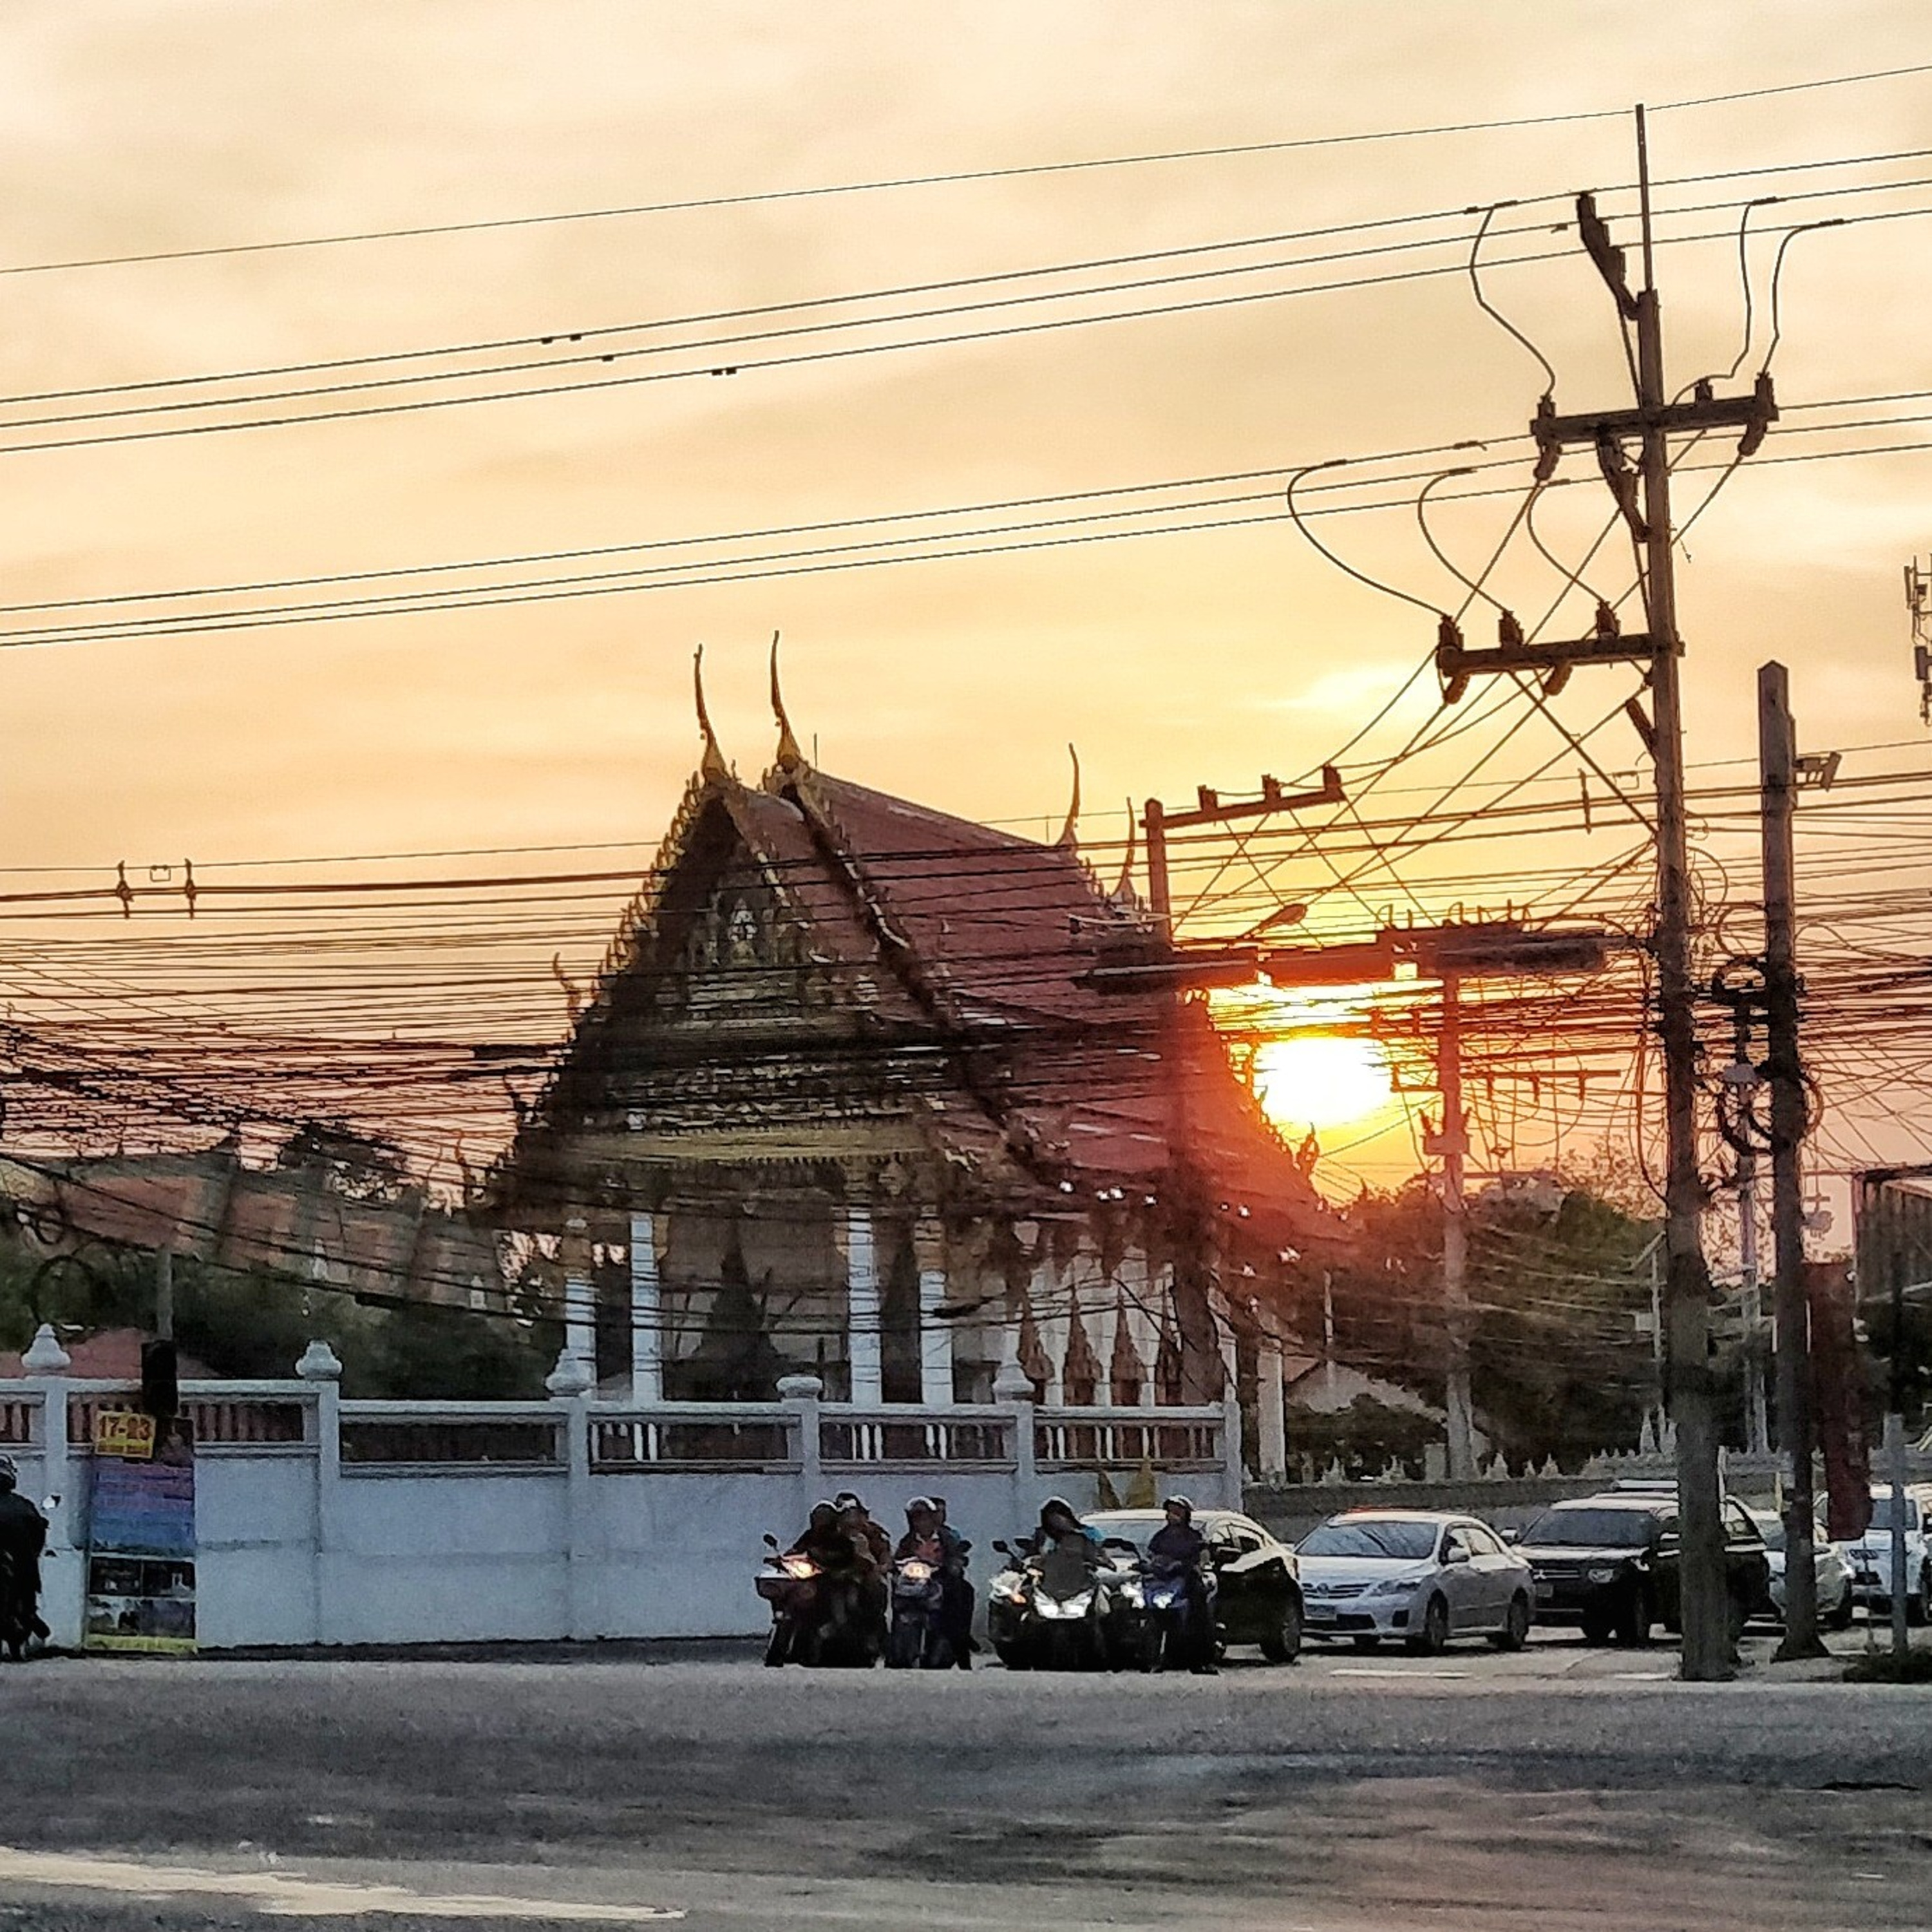 Ashrams and meditation centers of Thailand - there are so many of them!